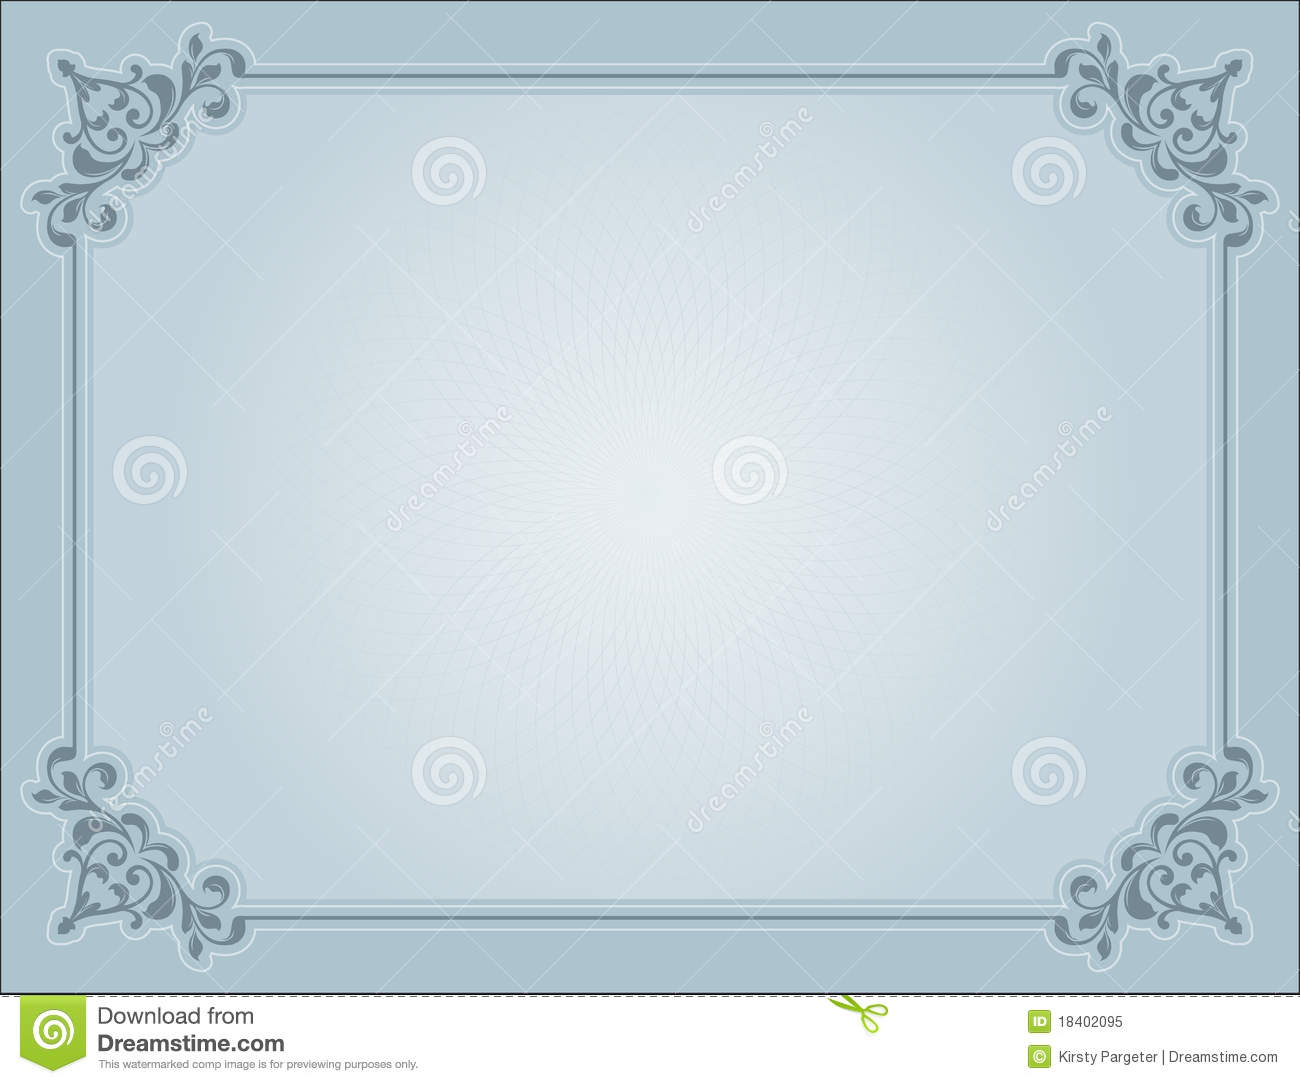 Decorative Certificate Royalty Free Stock Photo - Image ...